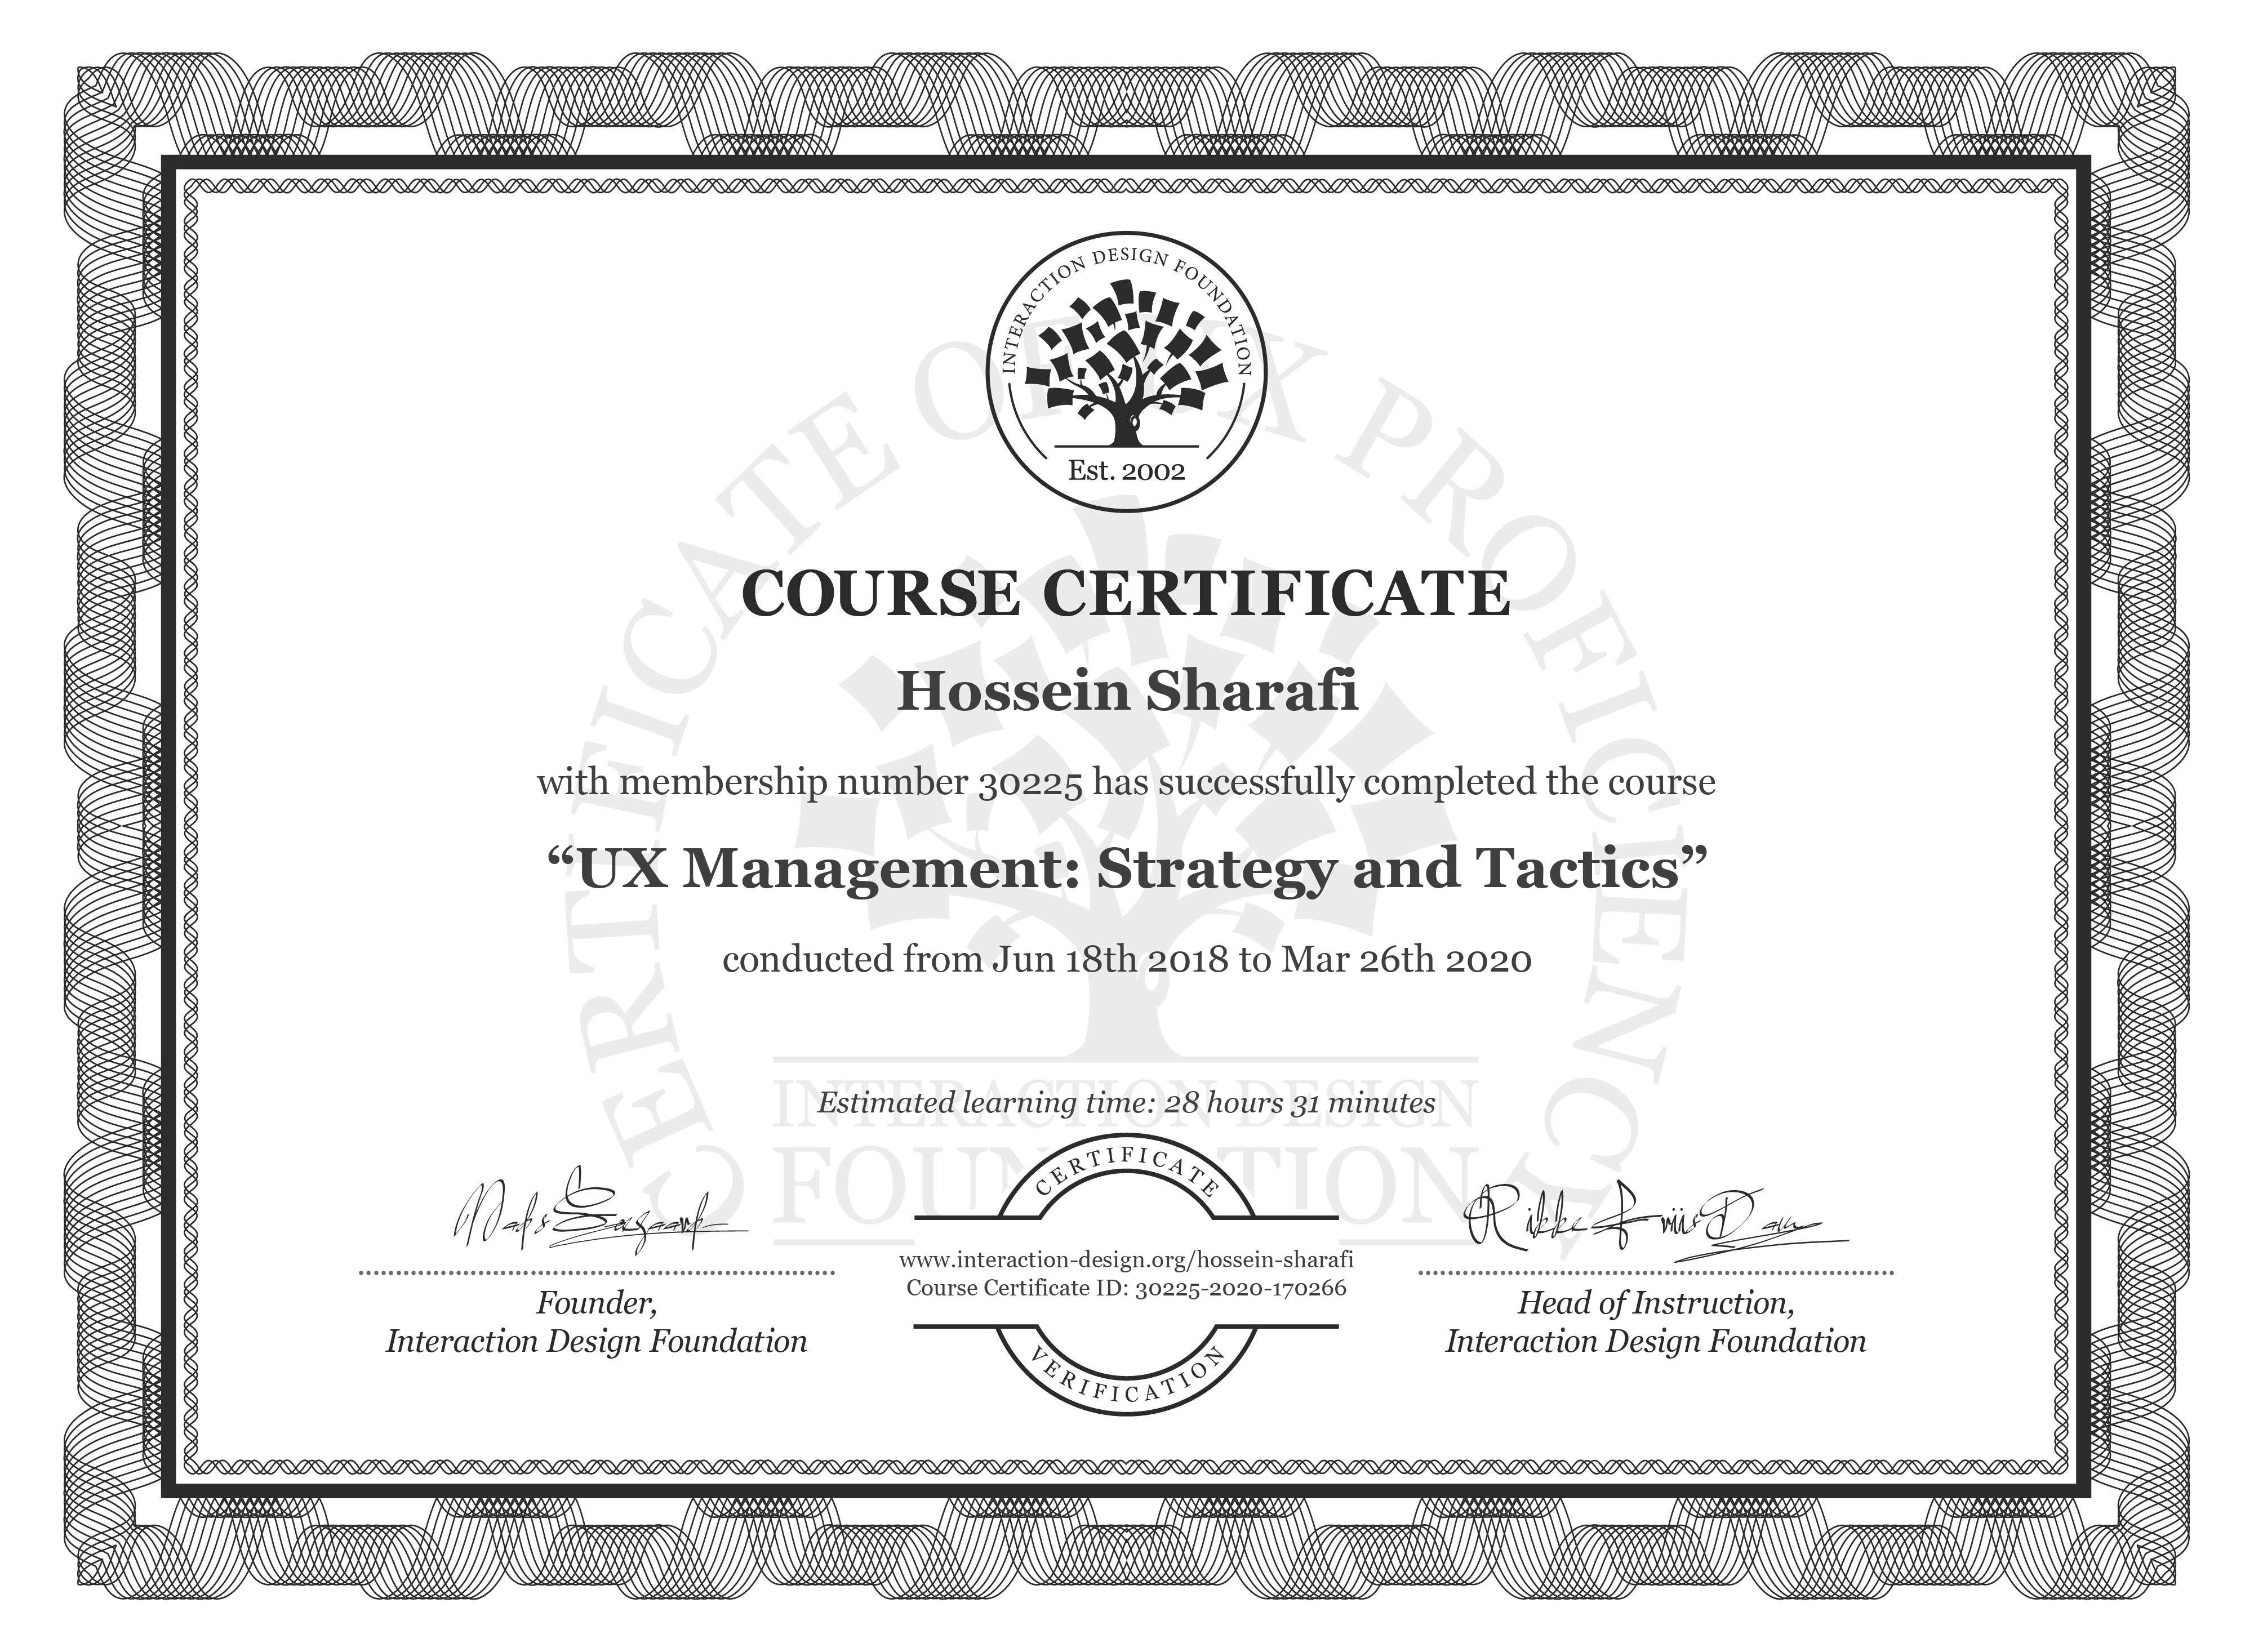 Hossein Sharafi's Course Certificate: UX Management: Strategy and Tactics